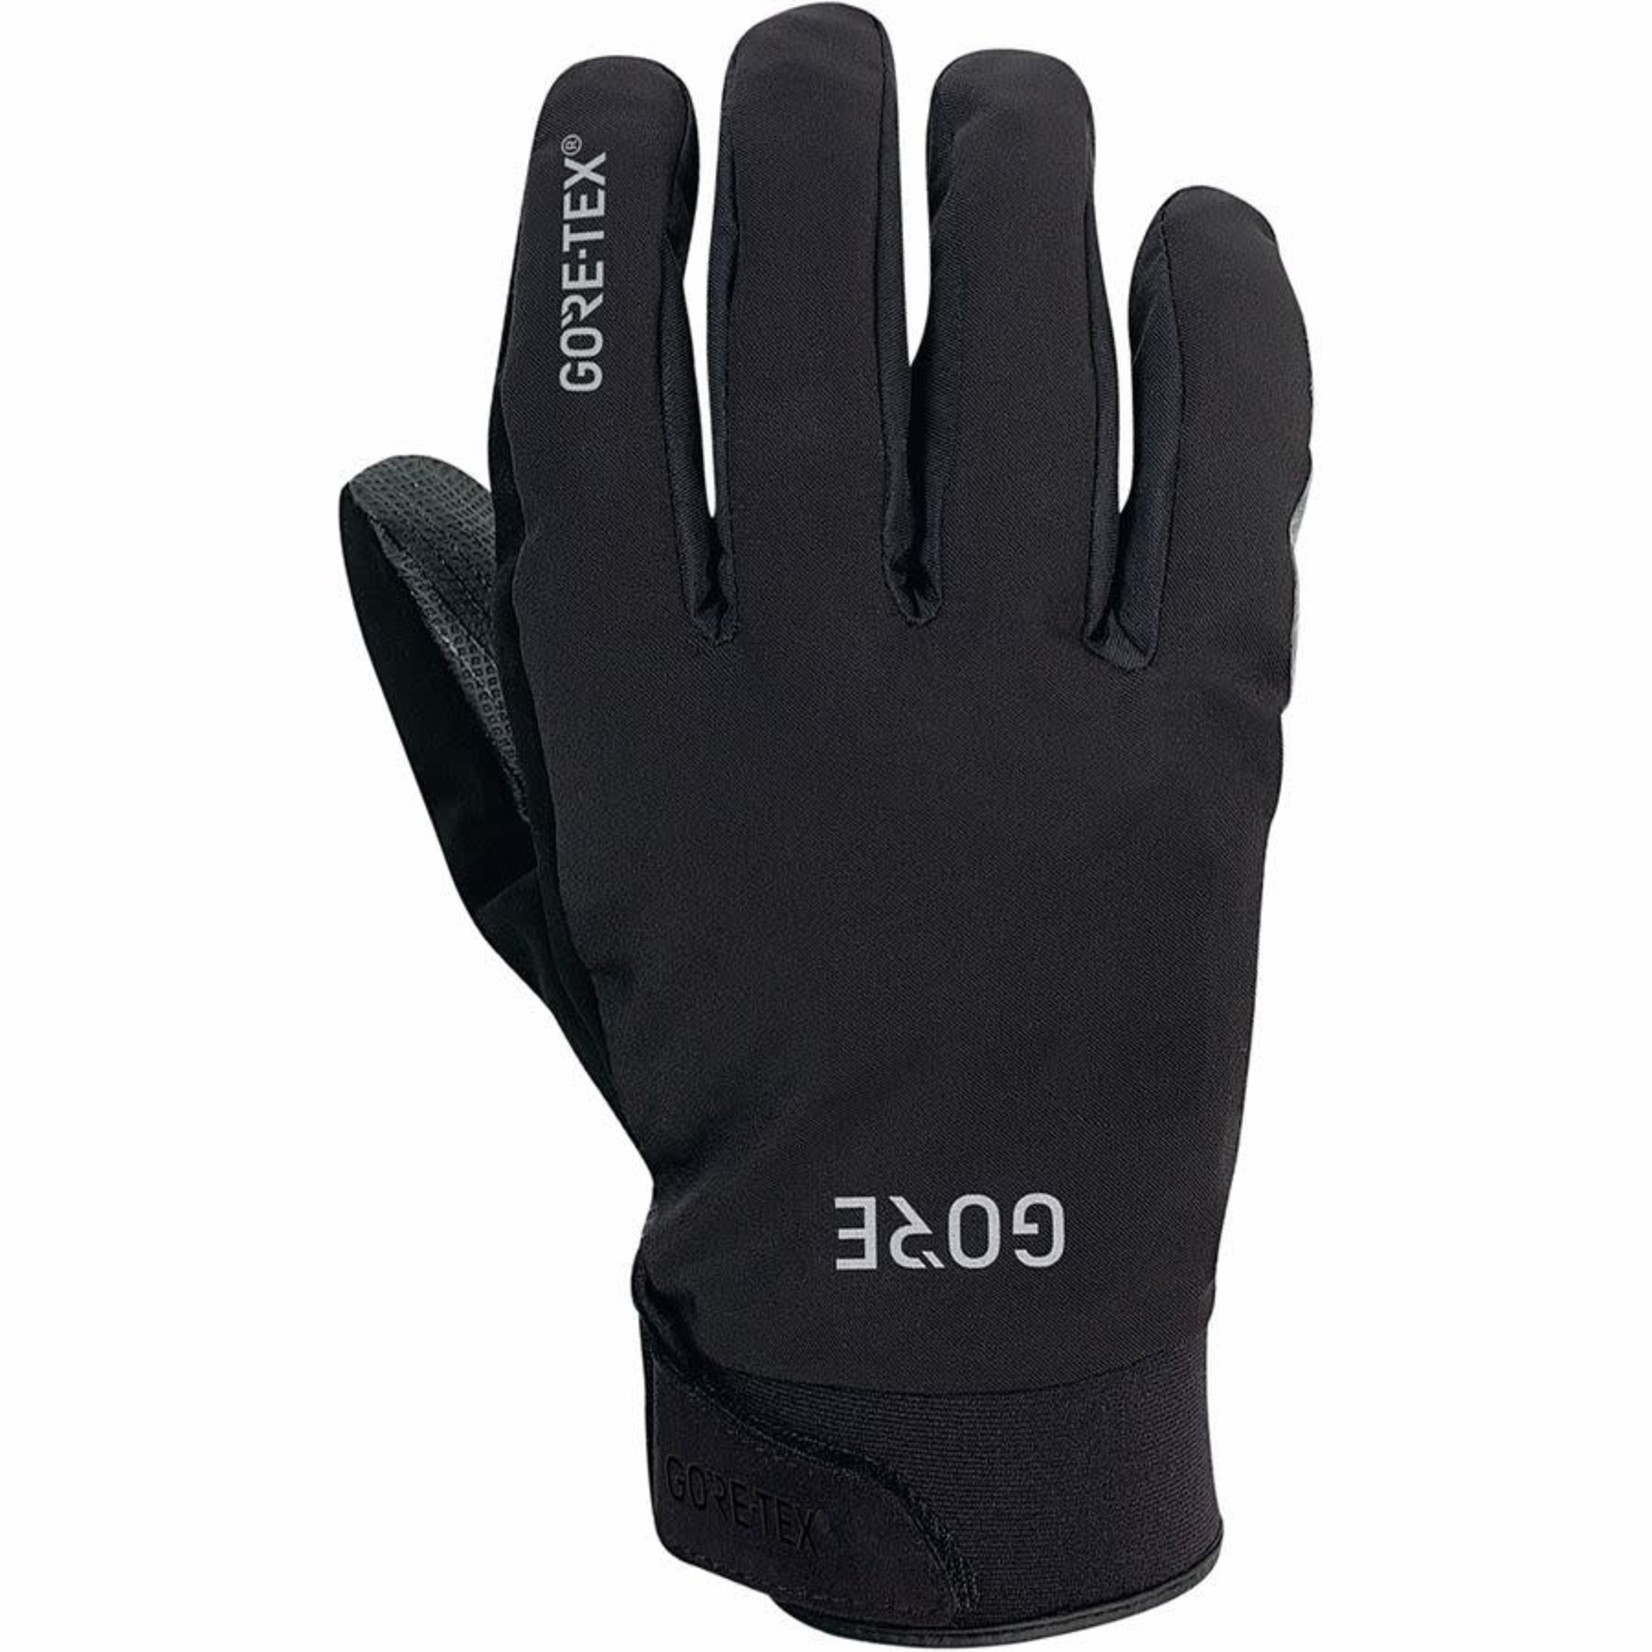 GORE Wear GORE C5 GORE-TEX Thermo Gloves - Black, X-Large